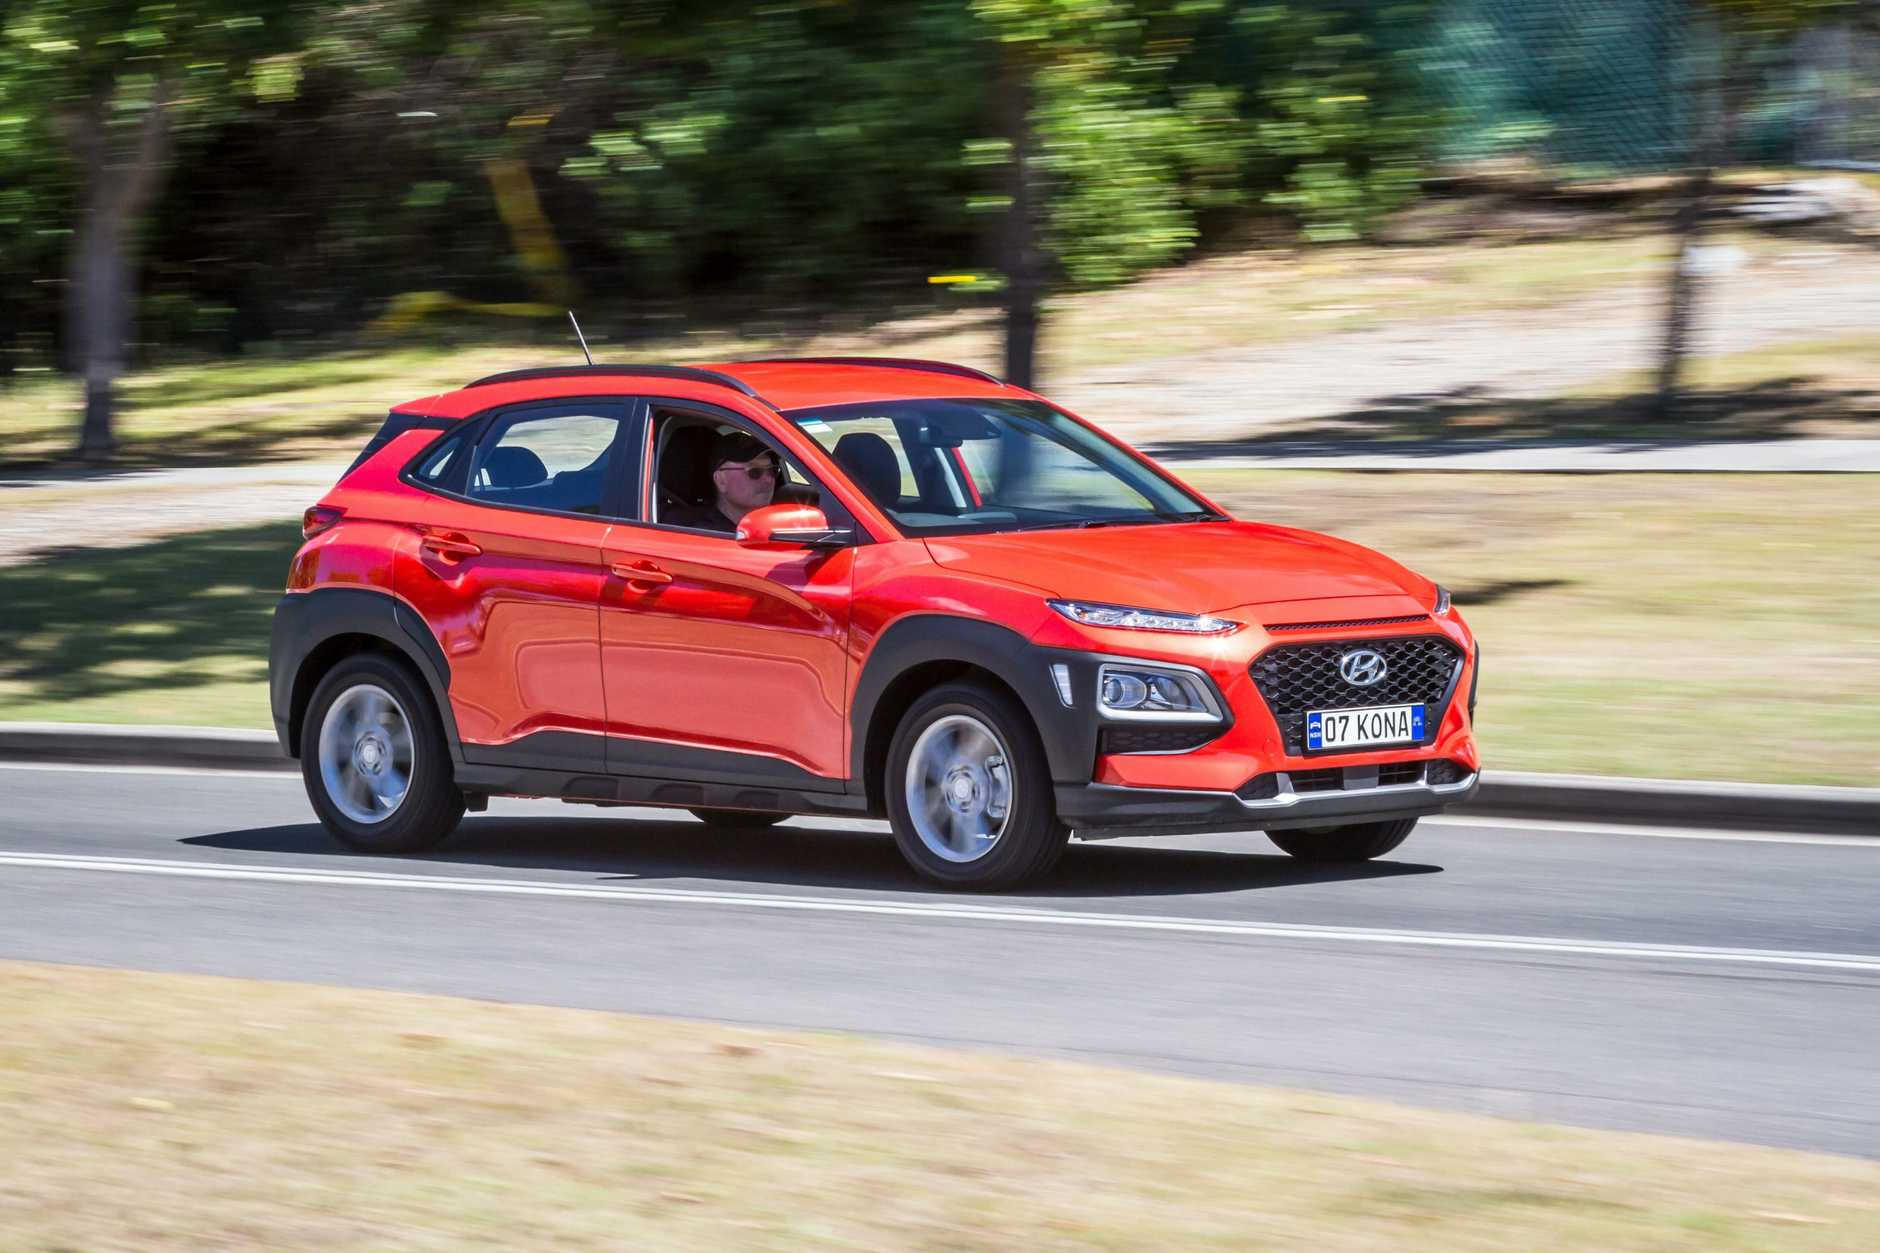 The Hyundai Kona.